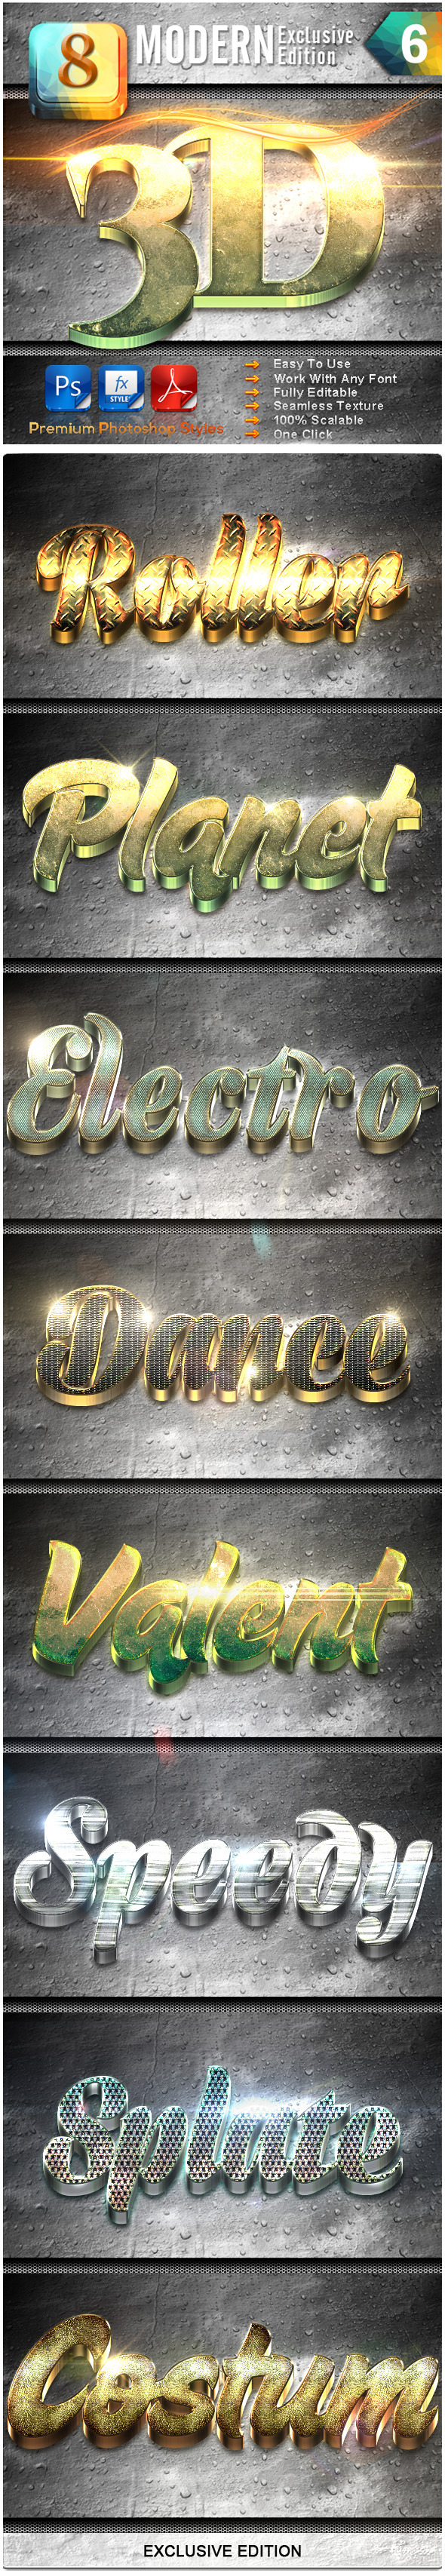 8 Modern 3D Exclusive Edition Vol.6 - Text Effects Styles